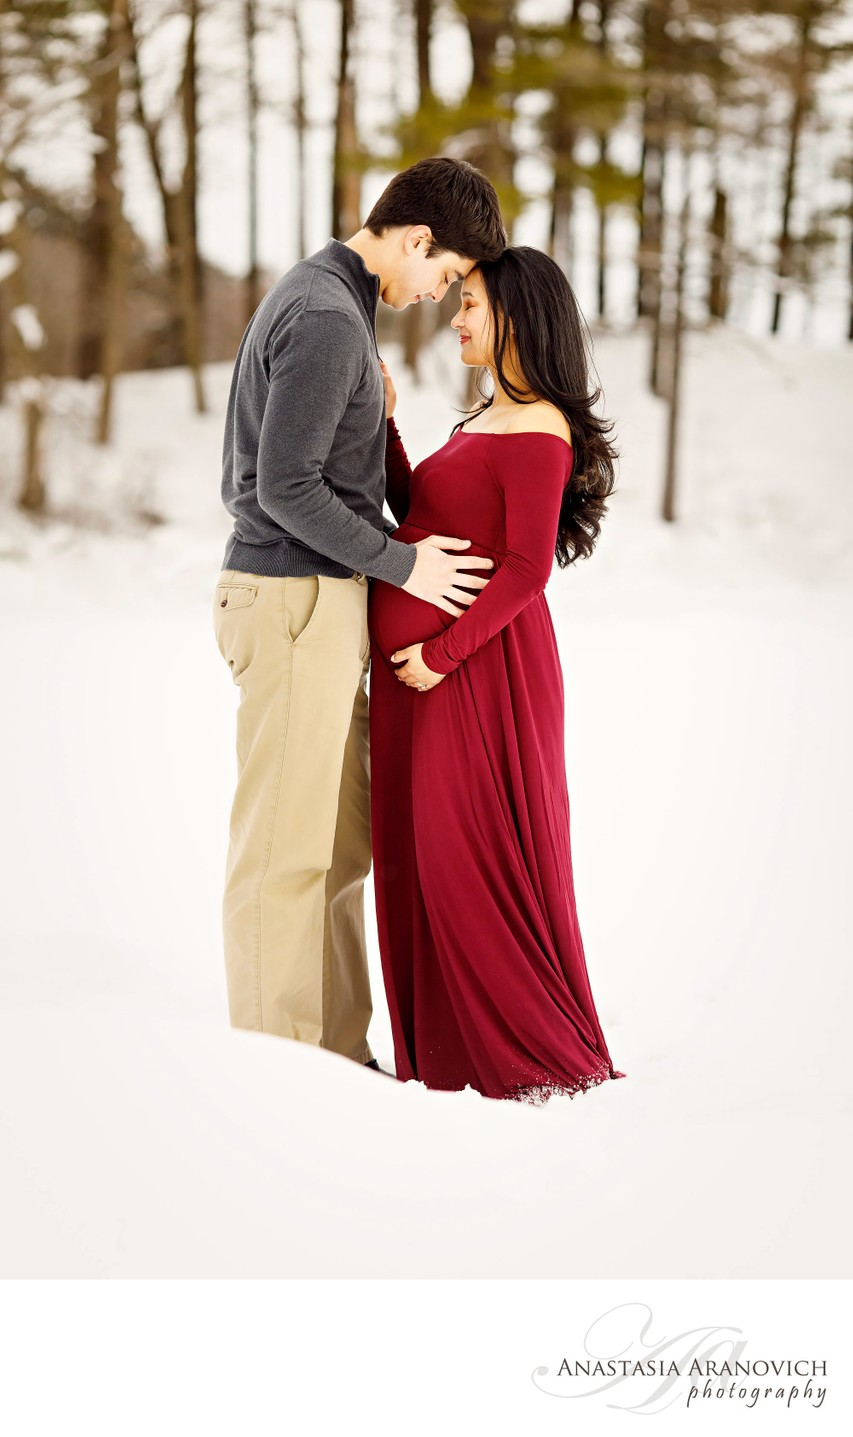 Wintery Photos of Expecting Parents